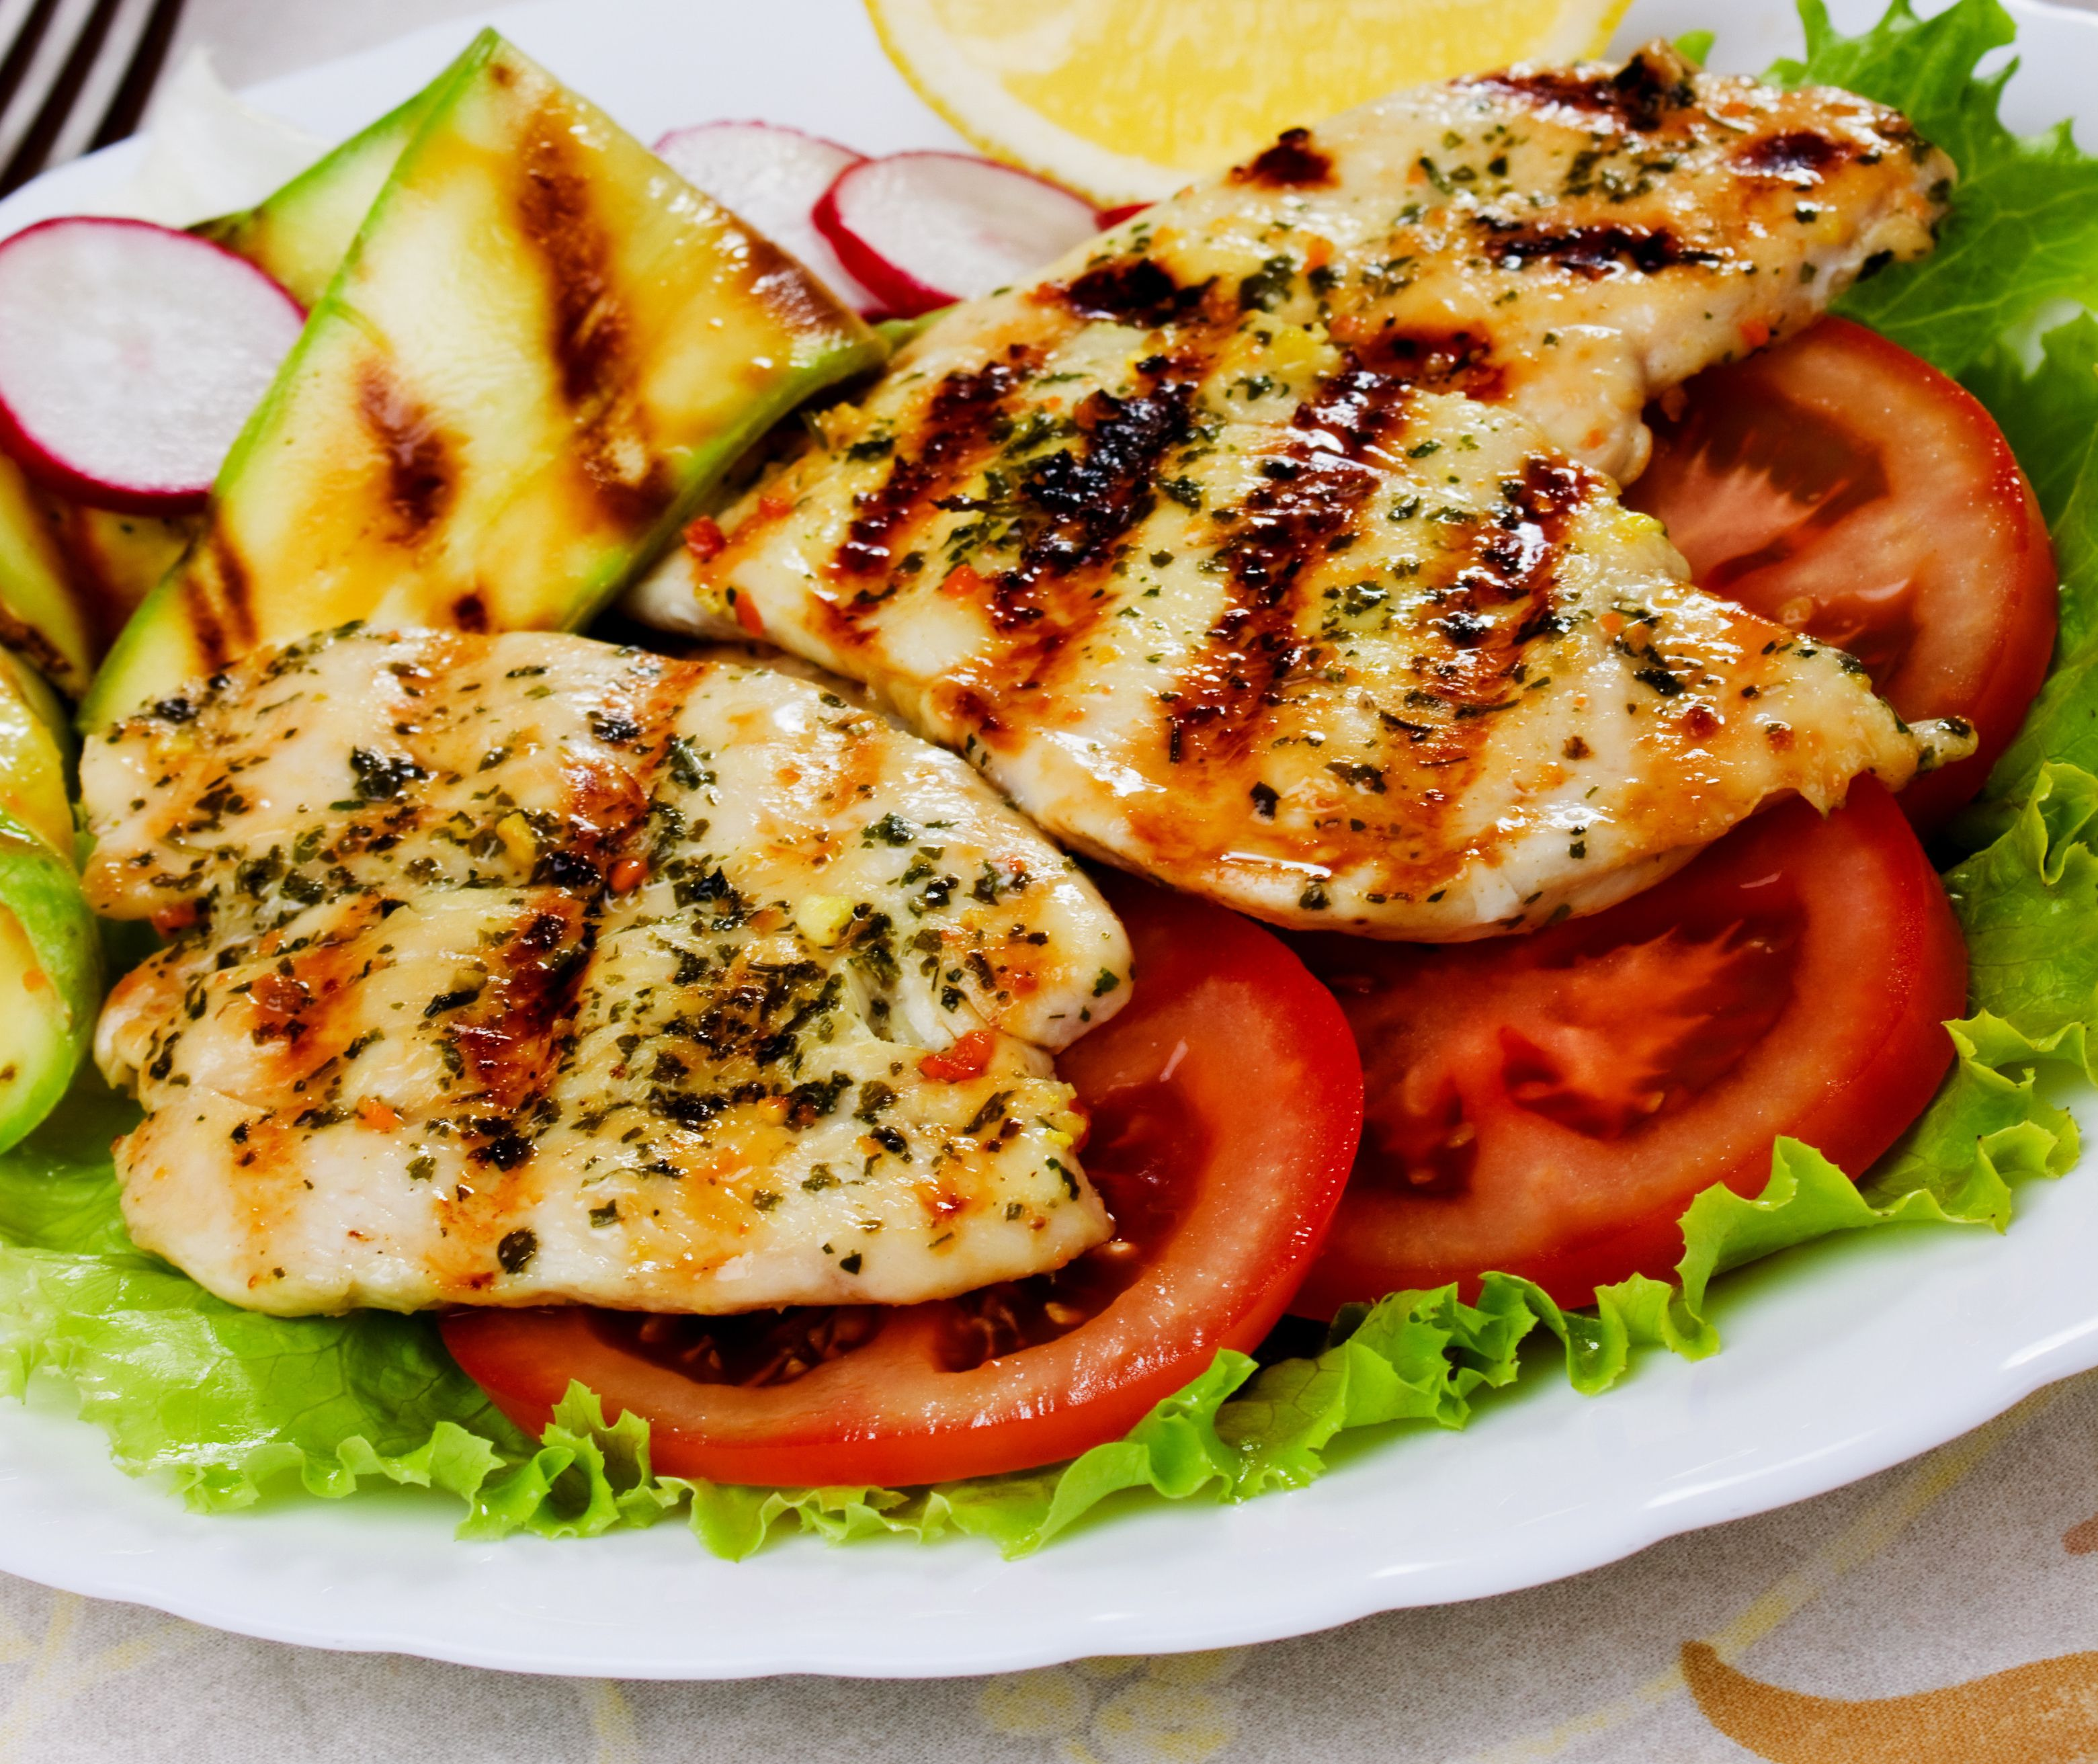 Our Kitchen To Yours: Grilled Honey Mustard Chicken! From Our Kitchen To Yours